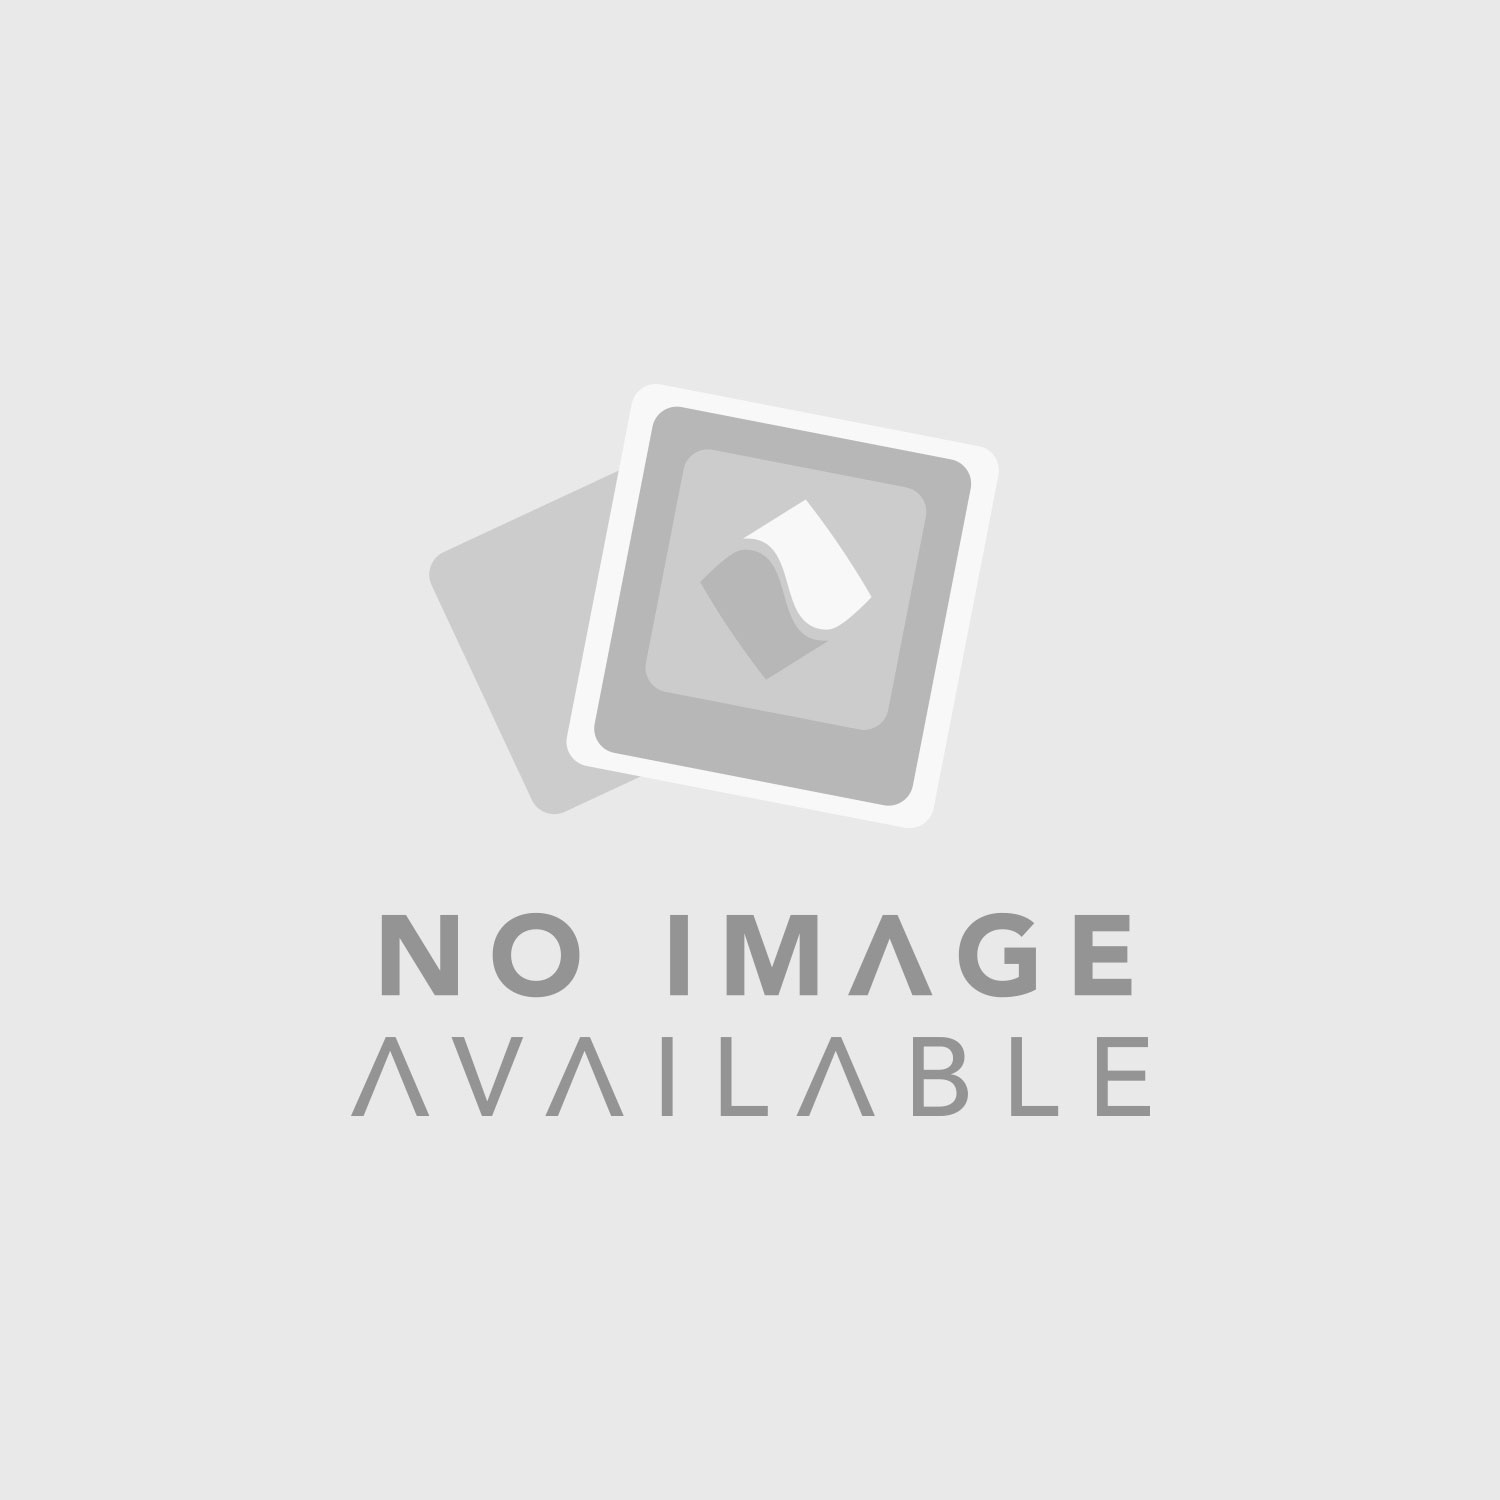 Pioneer DJ HDJ-X10 Professional Over-Ear DJ Headphones (Silver)